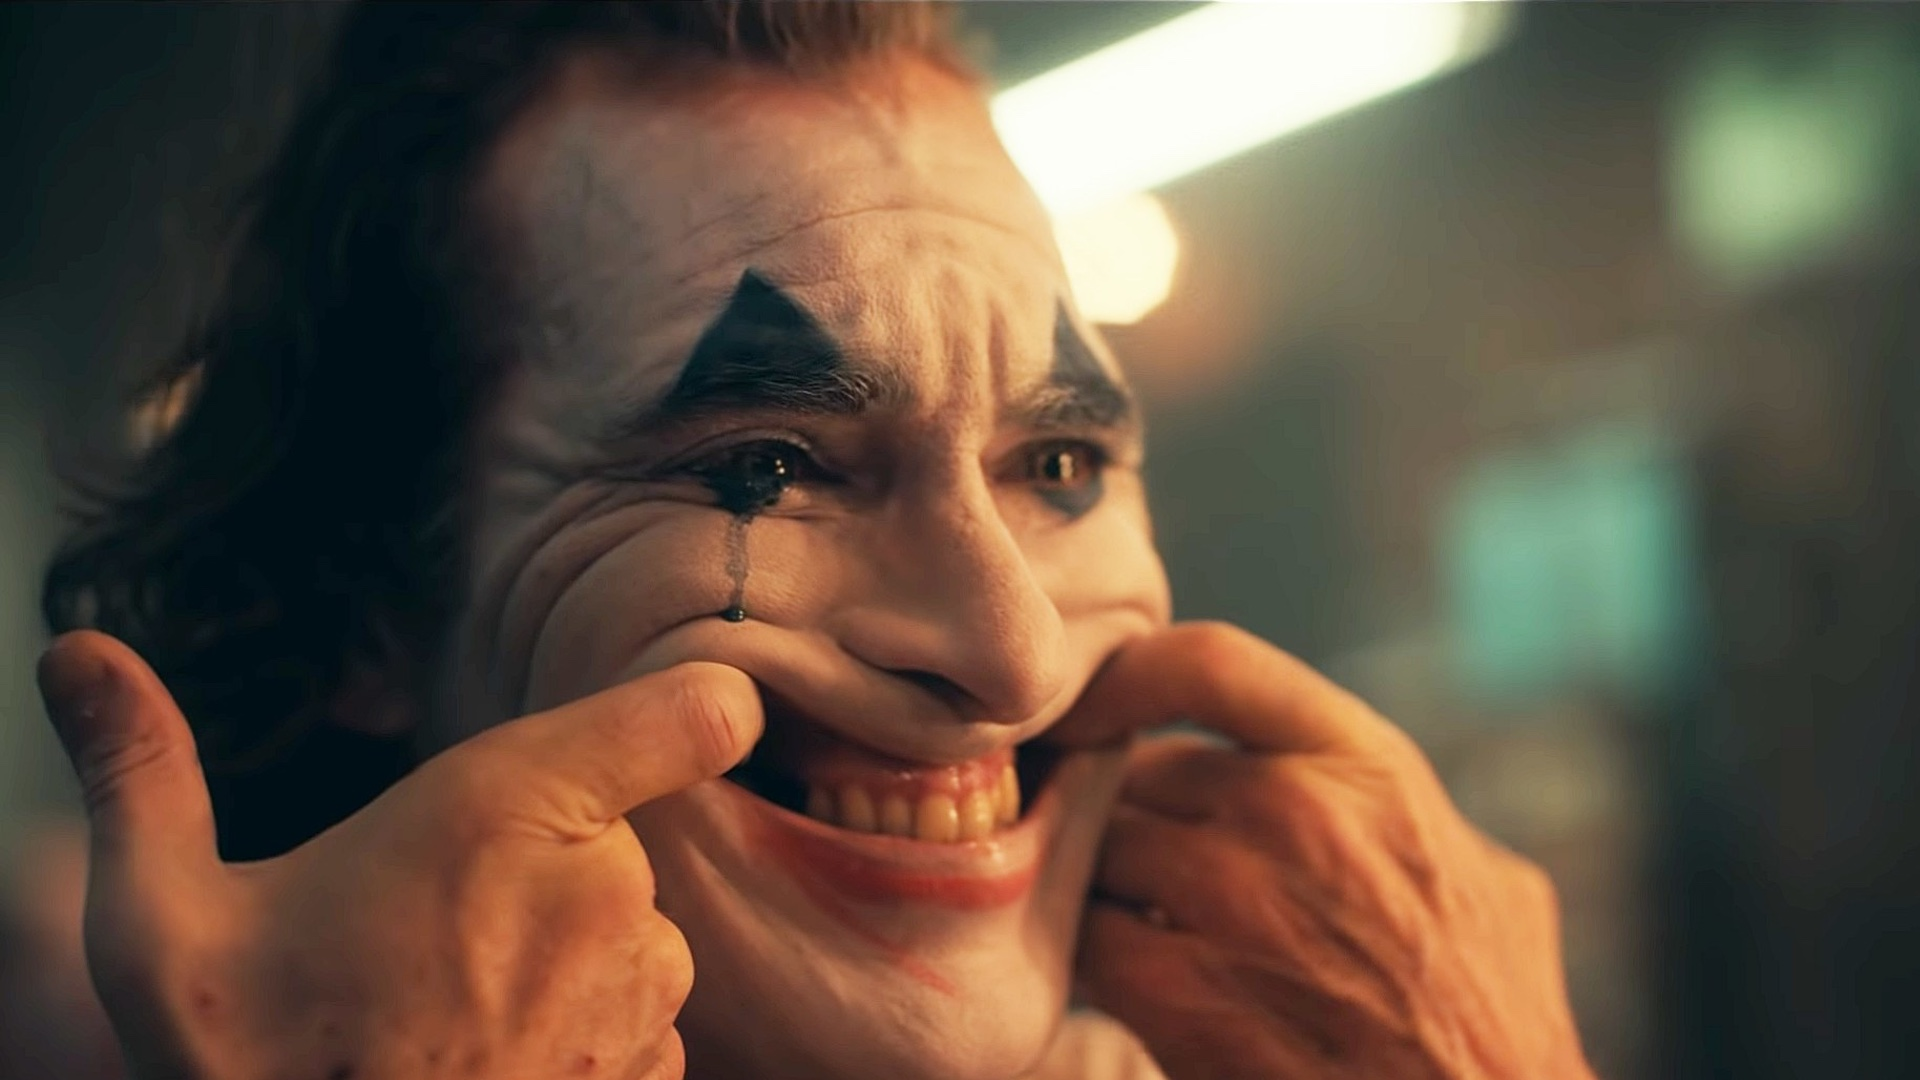 joaquin-phoenix-reveals-the-origin-of-his-laugh-for-joker-and-theres-a-new-synopsis-social.jpg